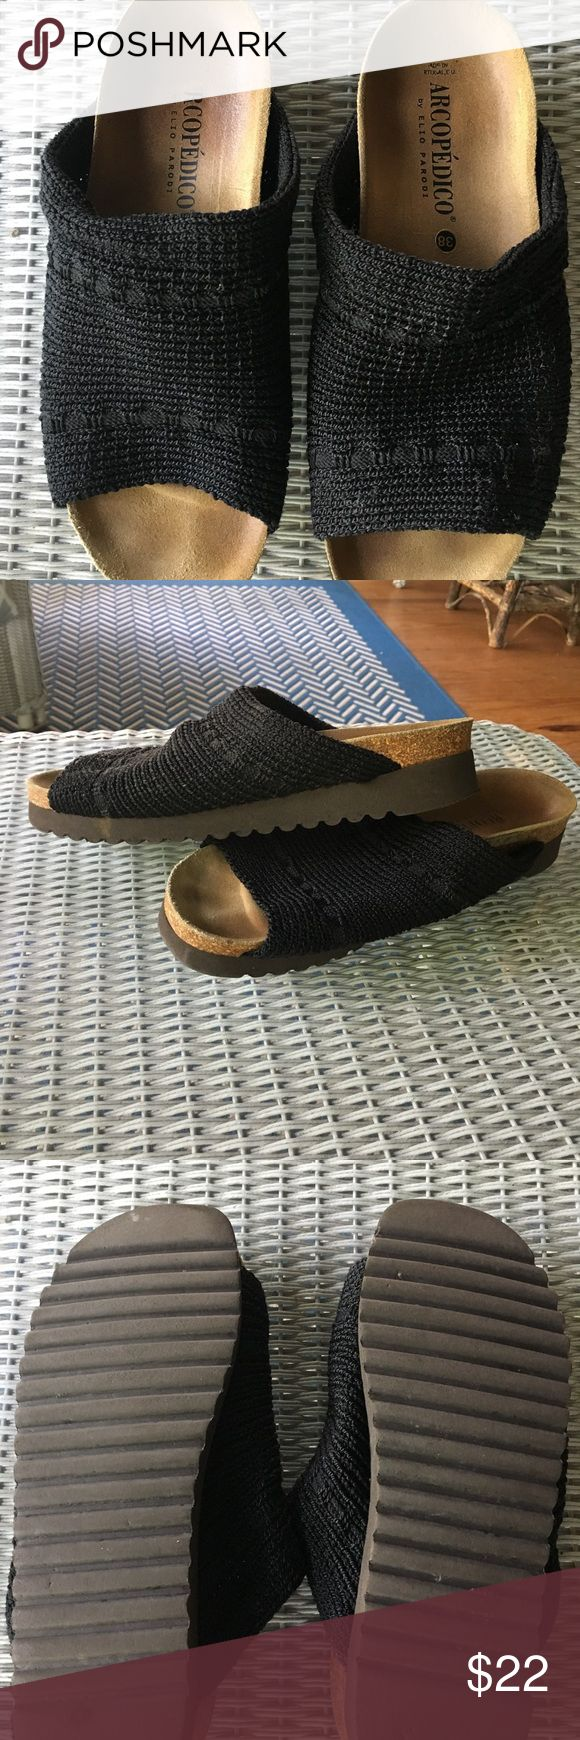 Arcopedico slides - comfy! Barely worn, nearly new condition. You can't get any more comfortable a shoe than Arcopedico BUT they aren't for people with narrow feet like mine. Great for wide feet, bunions etc...cute with shorts, pants and dresses. Very versatile! arcopedico Shoes Mules & Clogs